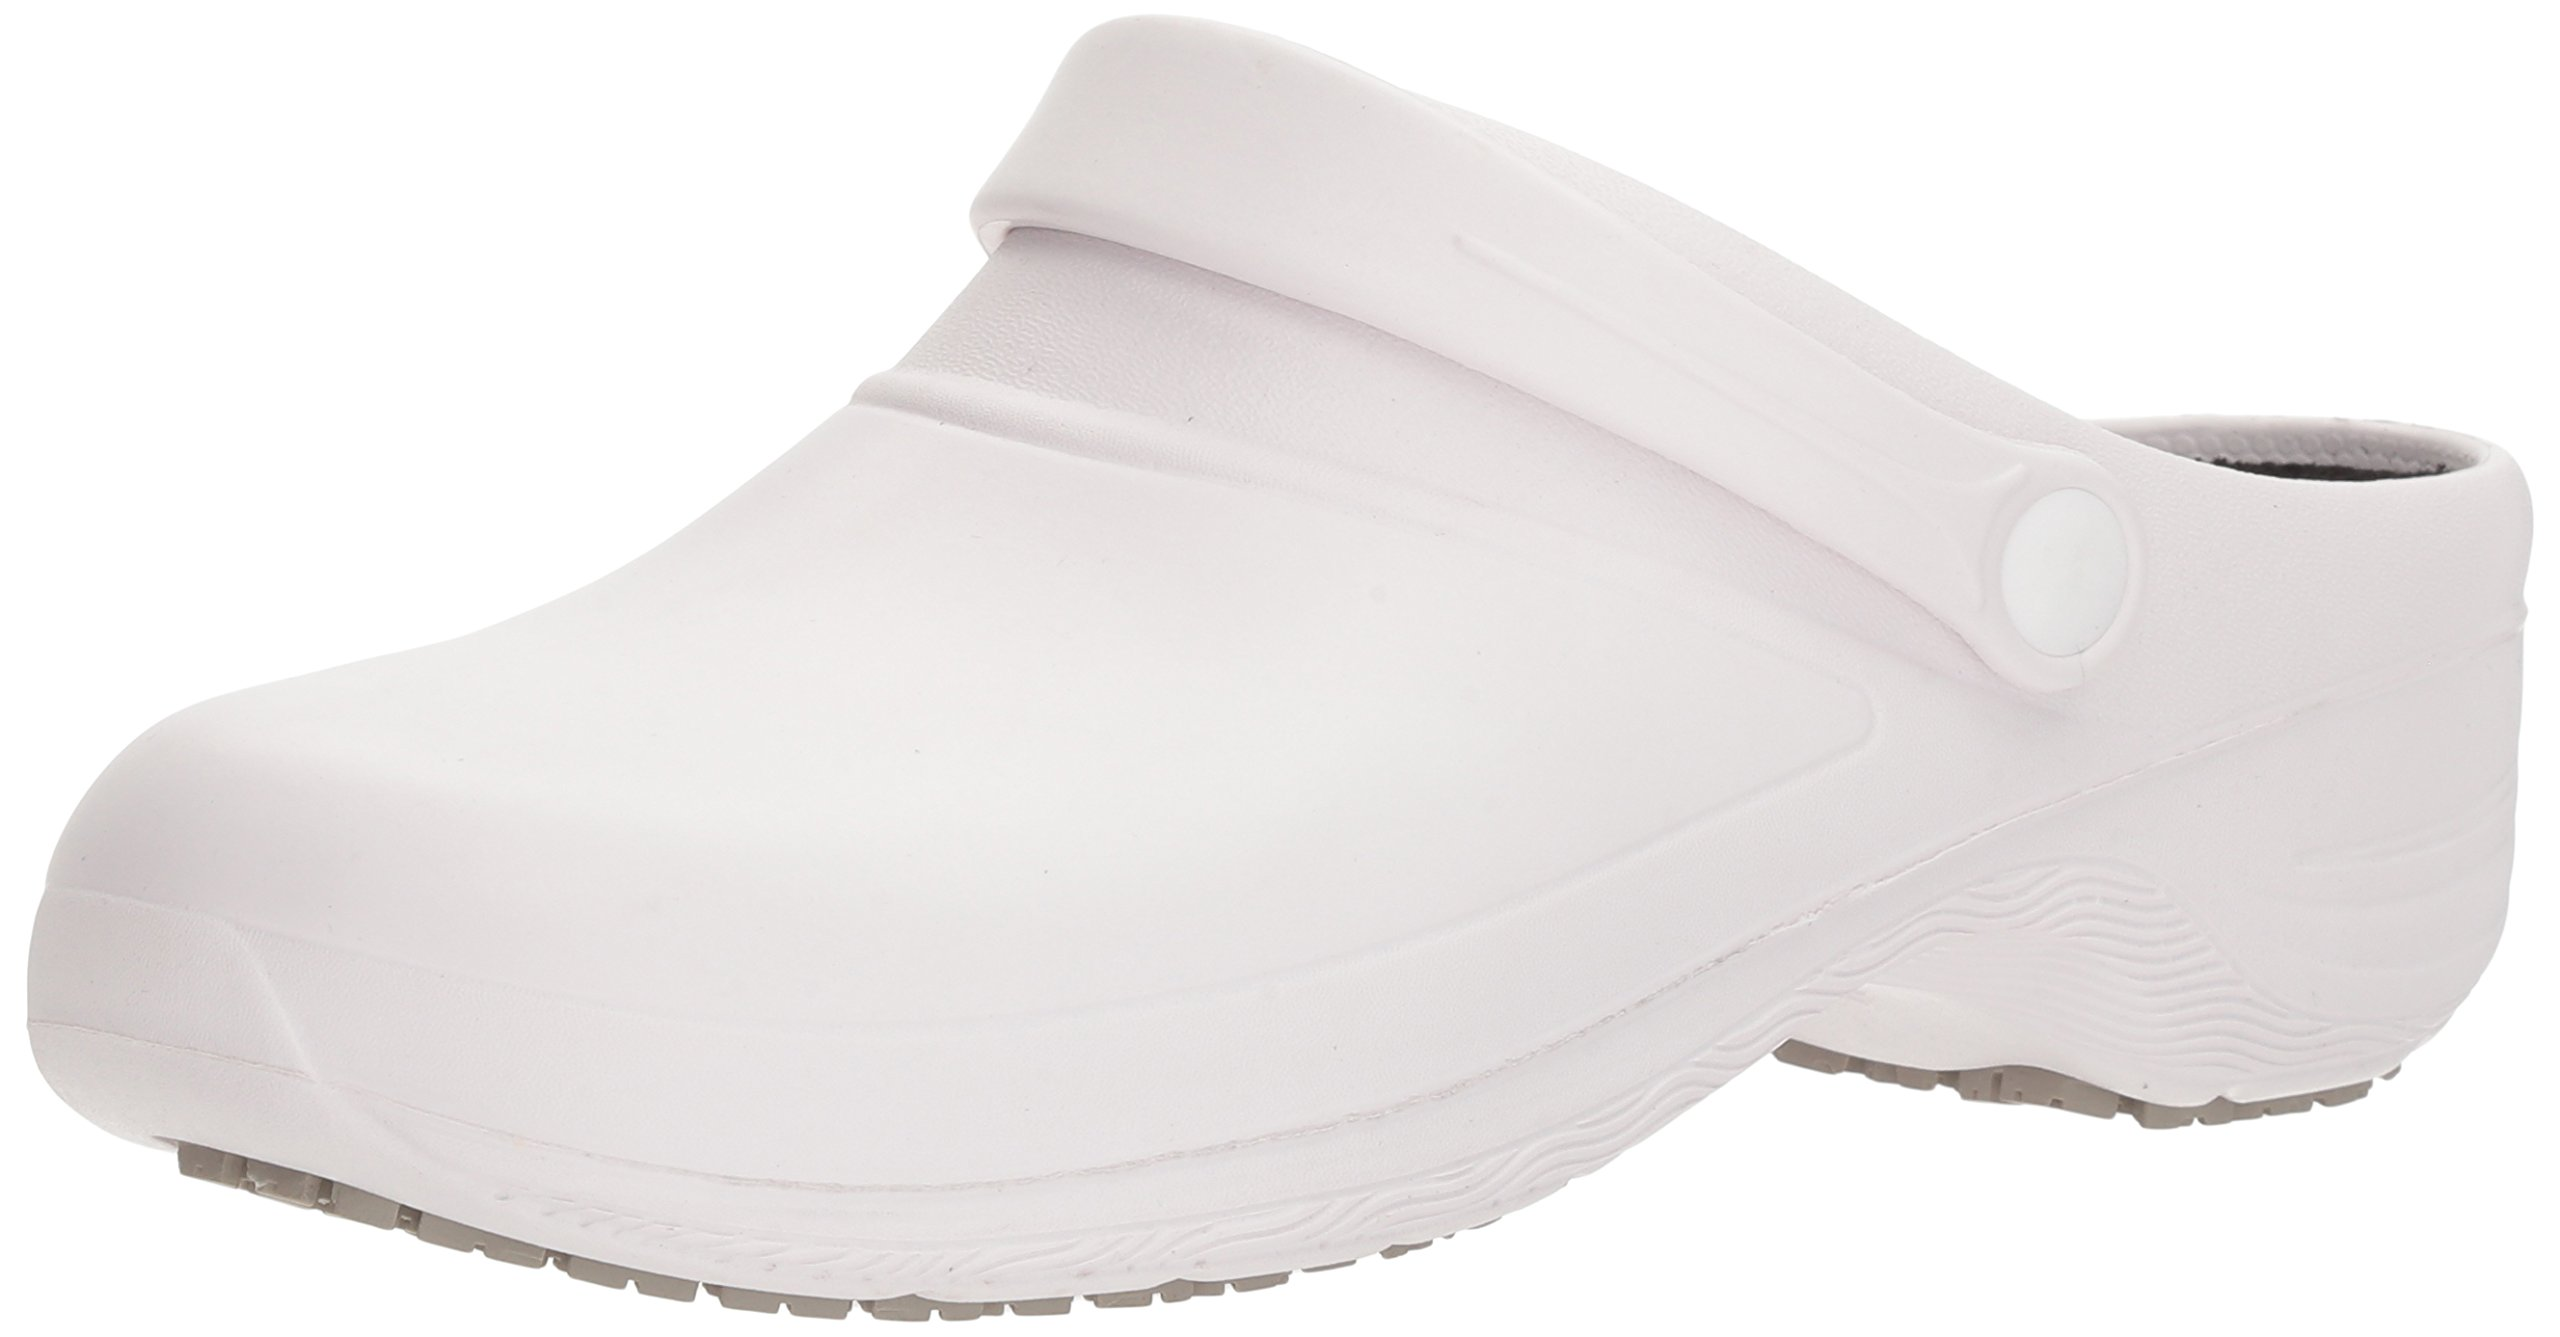 Easy Works Women's Time Health Care Professional Shoe, White, 5 M US